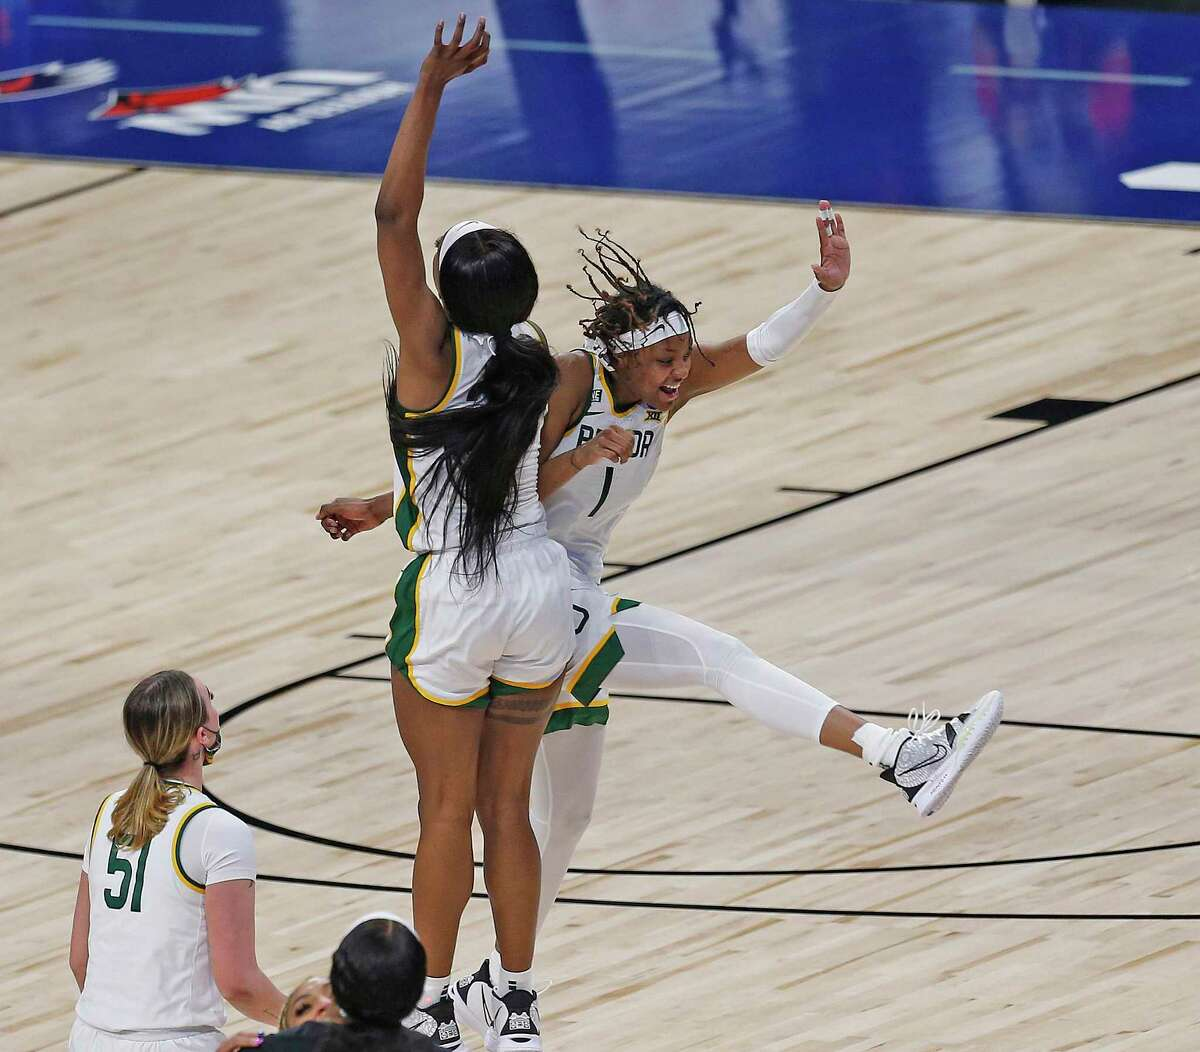 Baylor forward NaLyssa Smith (1) celebrates with Baylor center Queen Egbo (25) after Baylor defeated Michigan 78-75 in OT on Saturday, March 27, 2021 at the Alamodome.